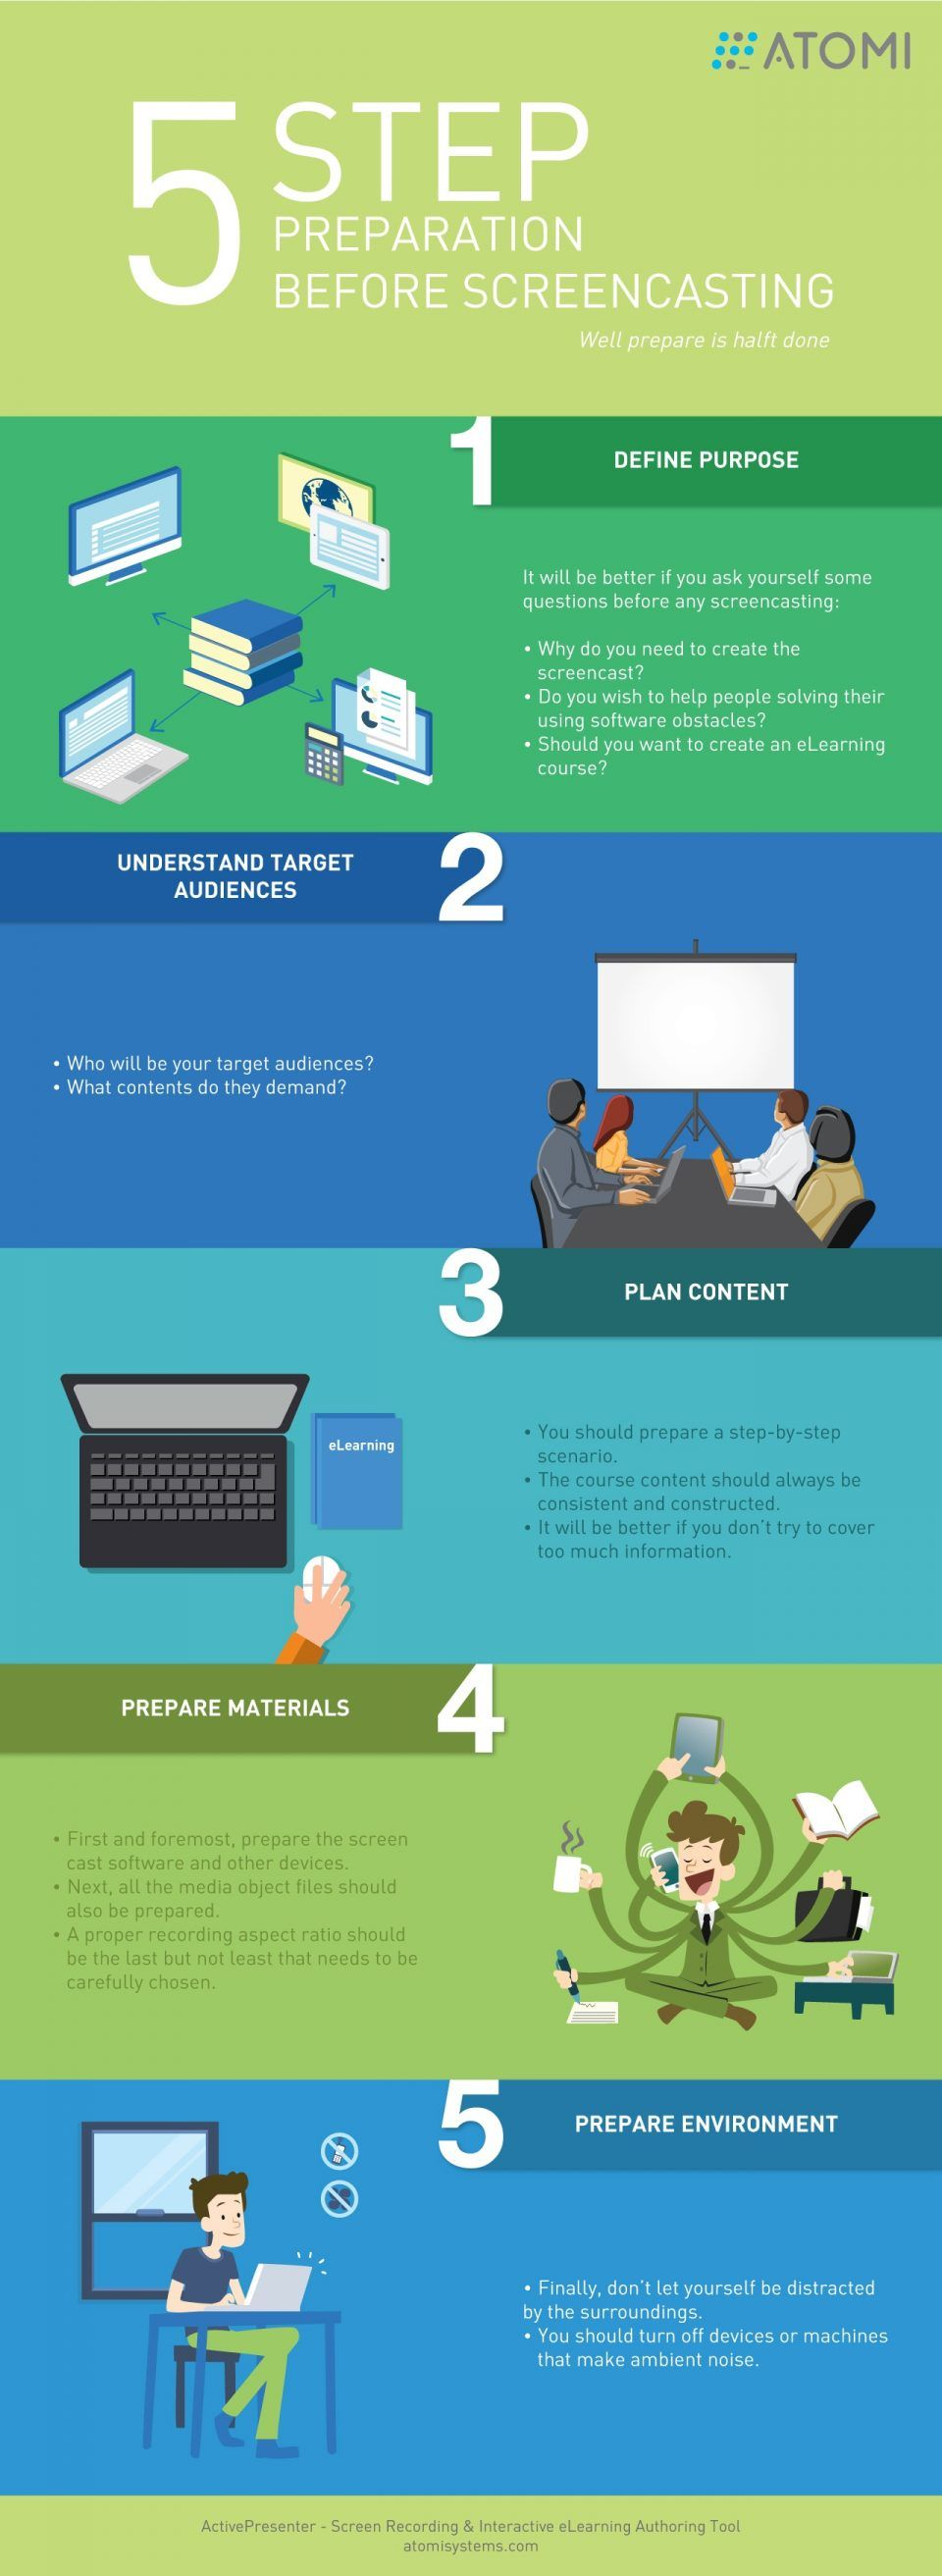 5 Step Preparation Before a Screencast Infographic